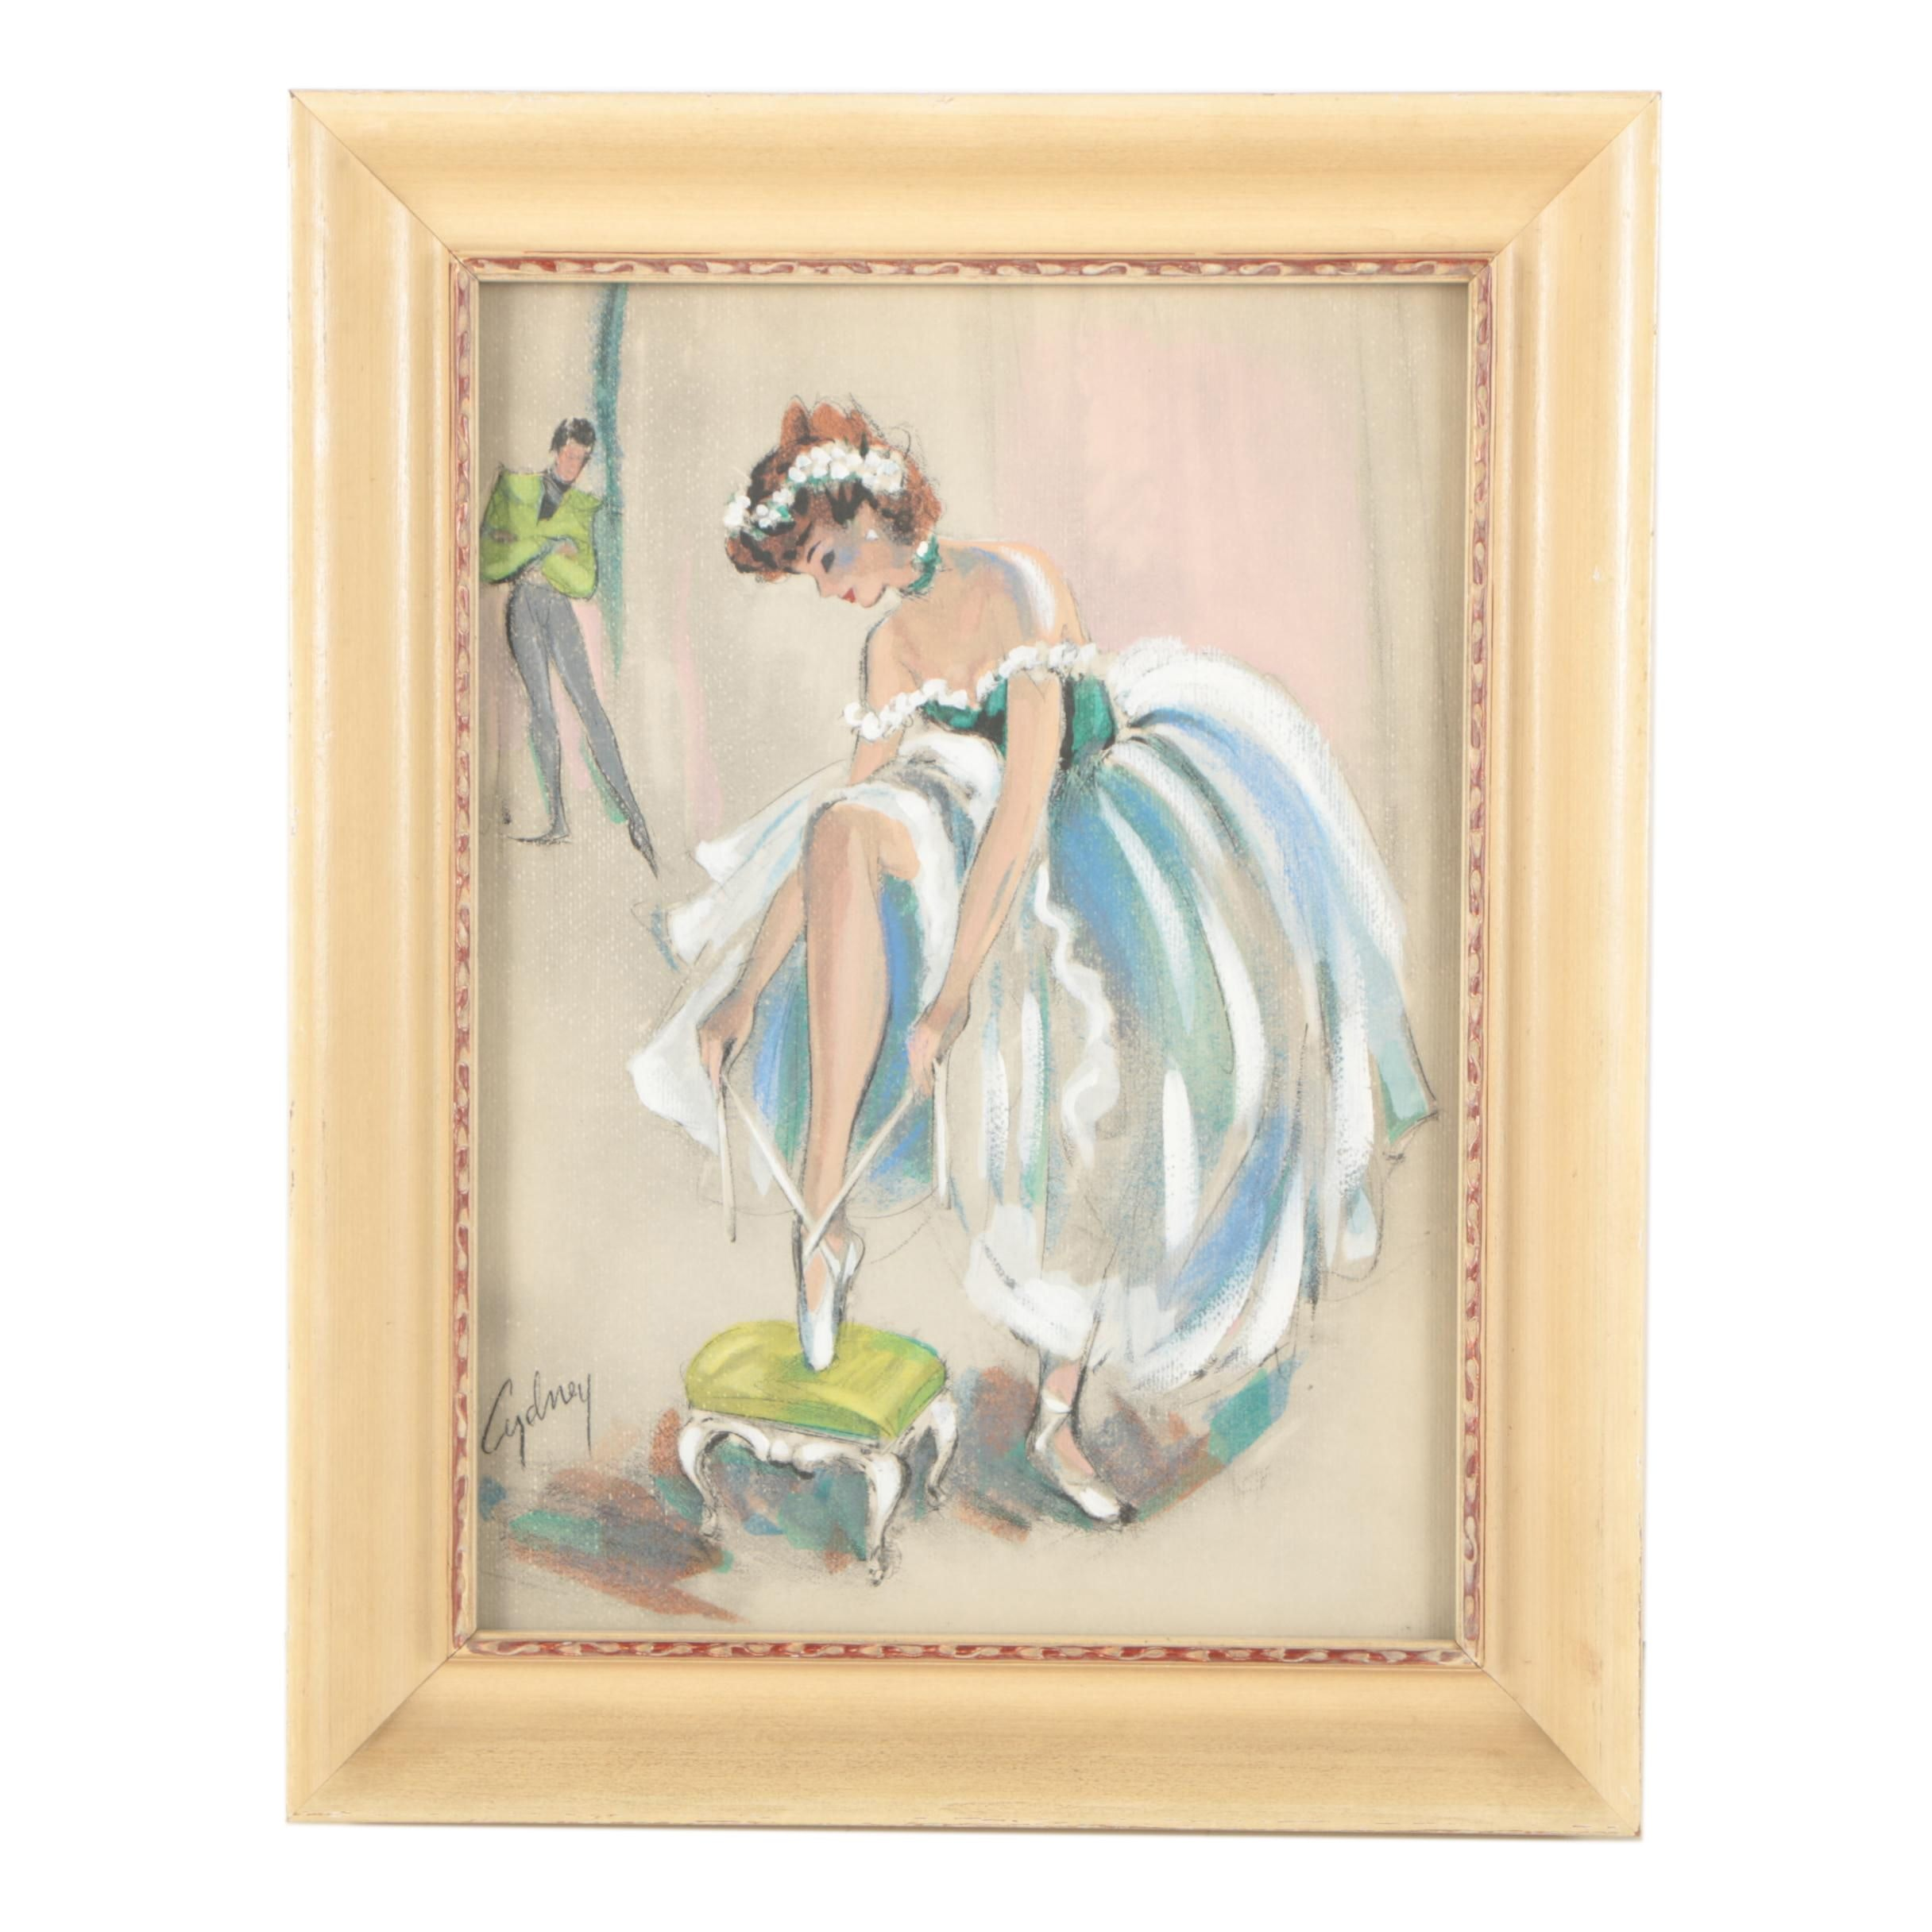 Cydney Grossman Mid Century Gouache Painting of a Ballerina Tying Her Shoe